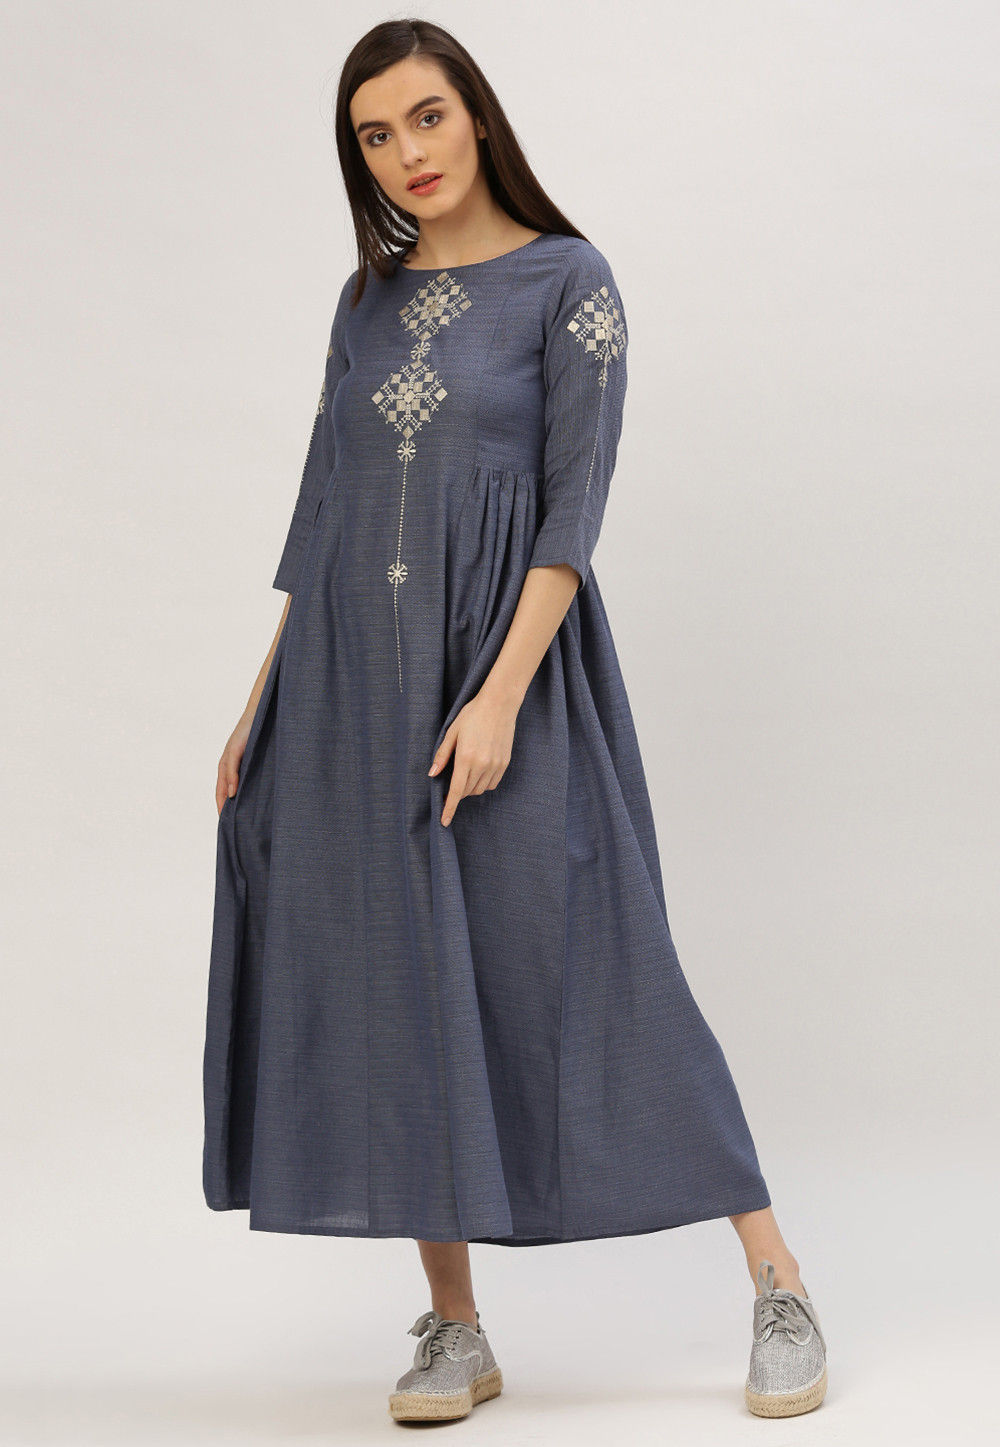 Handloom Cotton Flared Kurta in Blue